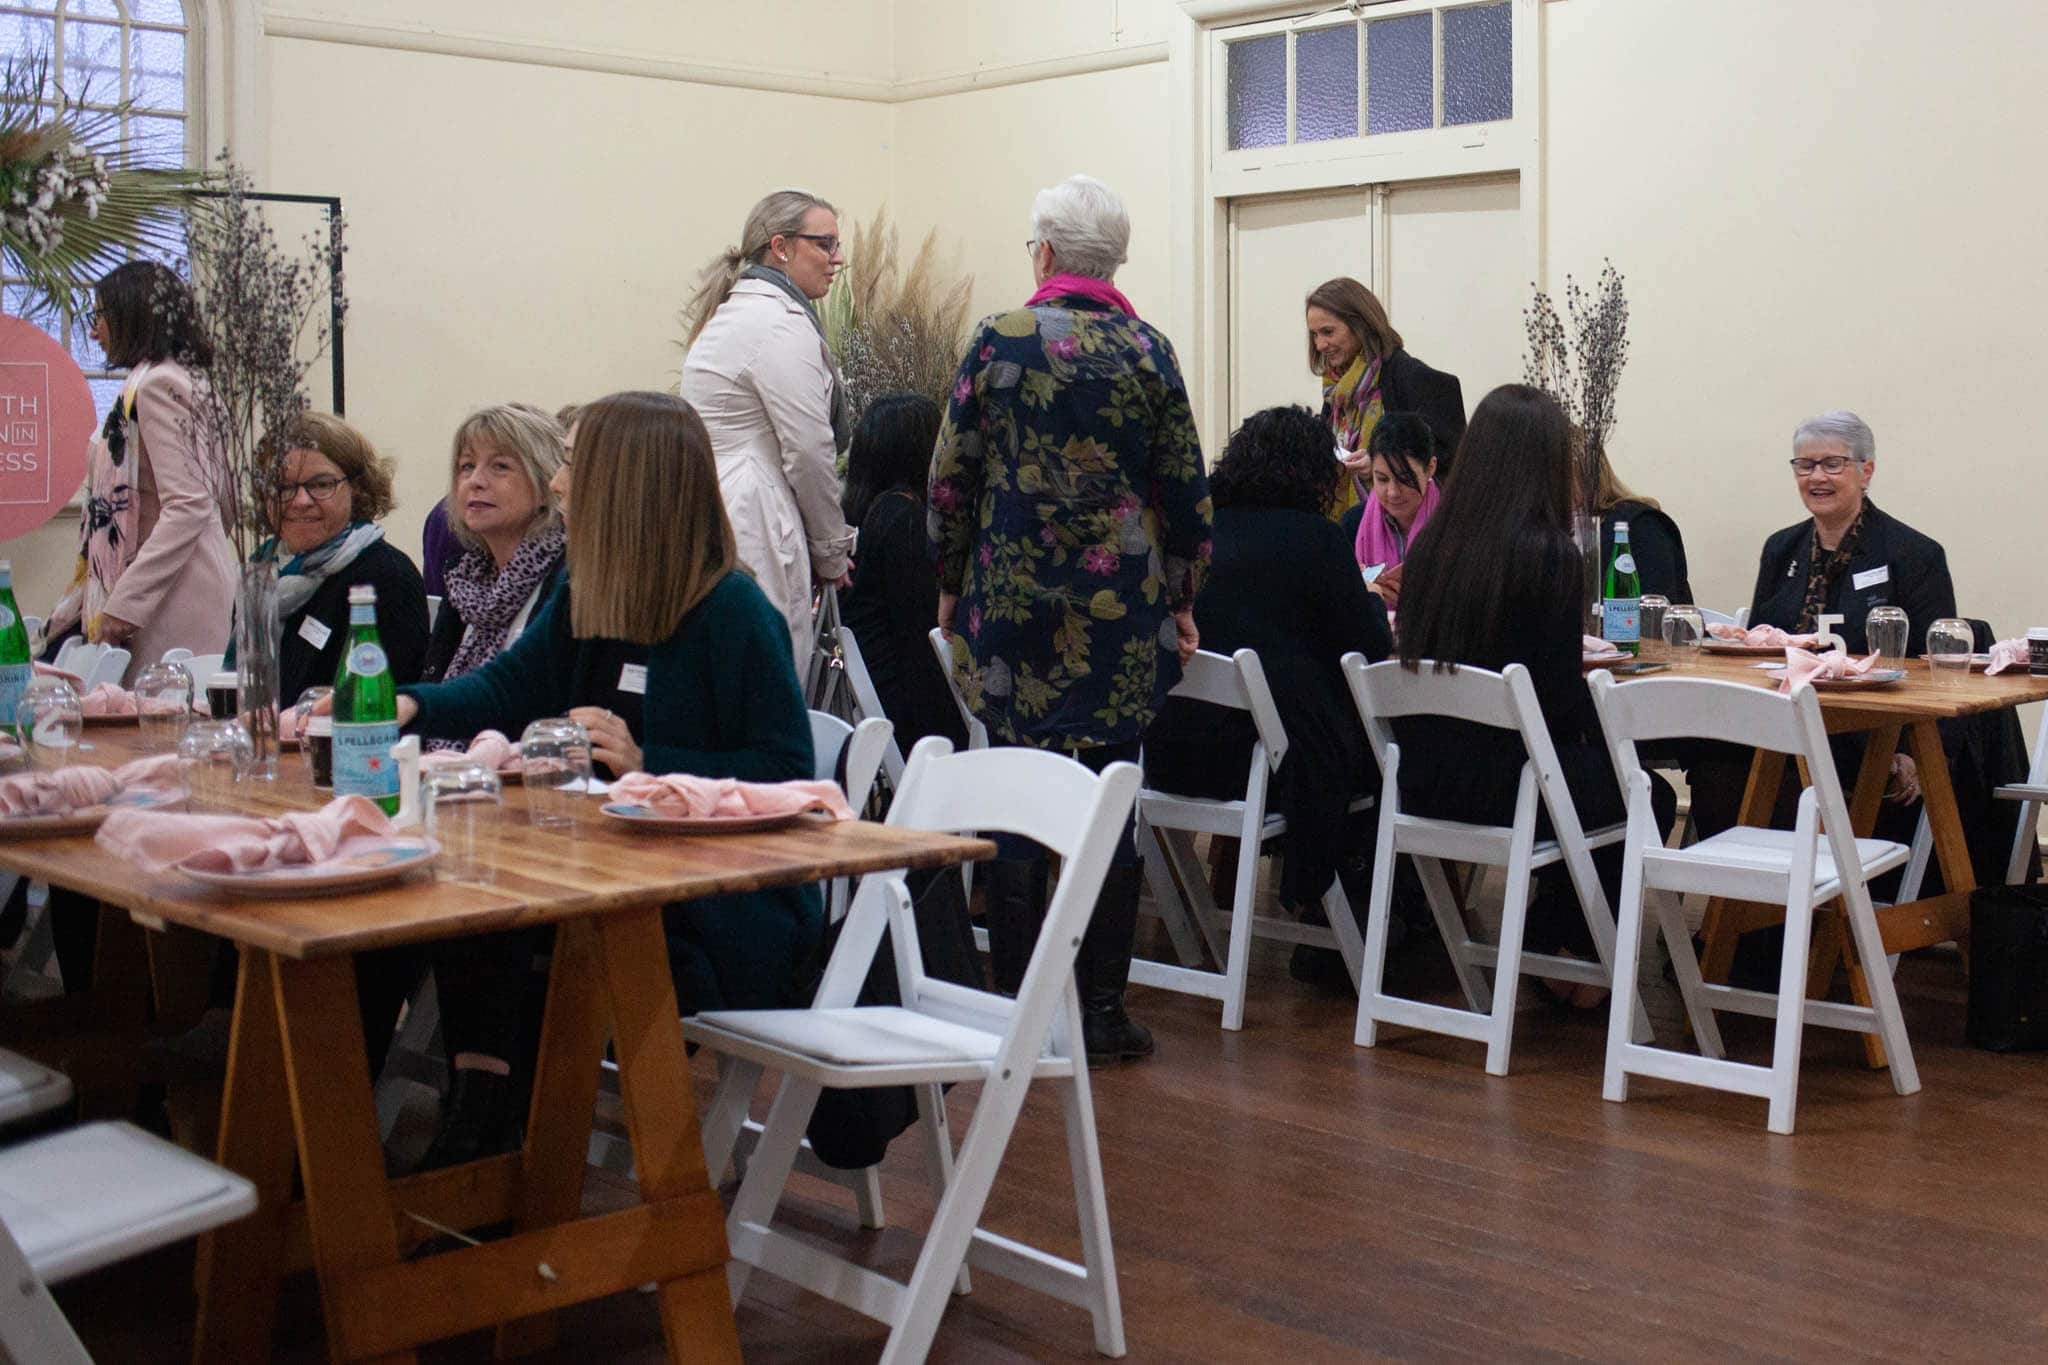 Members & Friends Breakfast - https://www.griffithwomeninbusiness.org/wp-content/uploads/2019/06/Griffith-Women-in-Business-GWIB-Members-and-Friends-Breakfast-WEB-7647.jpg